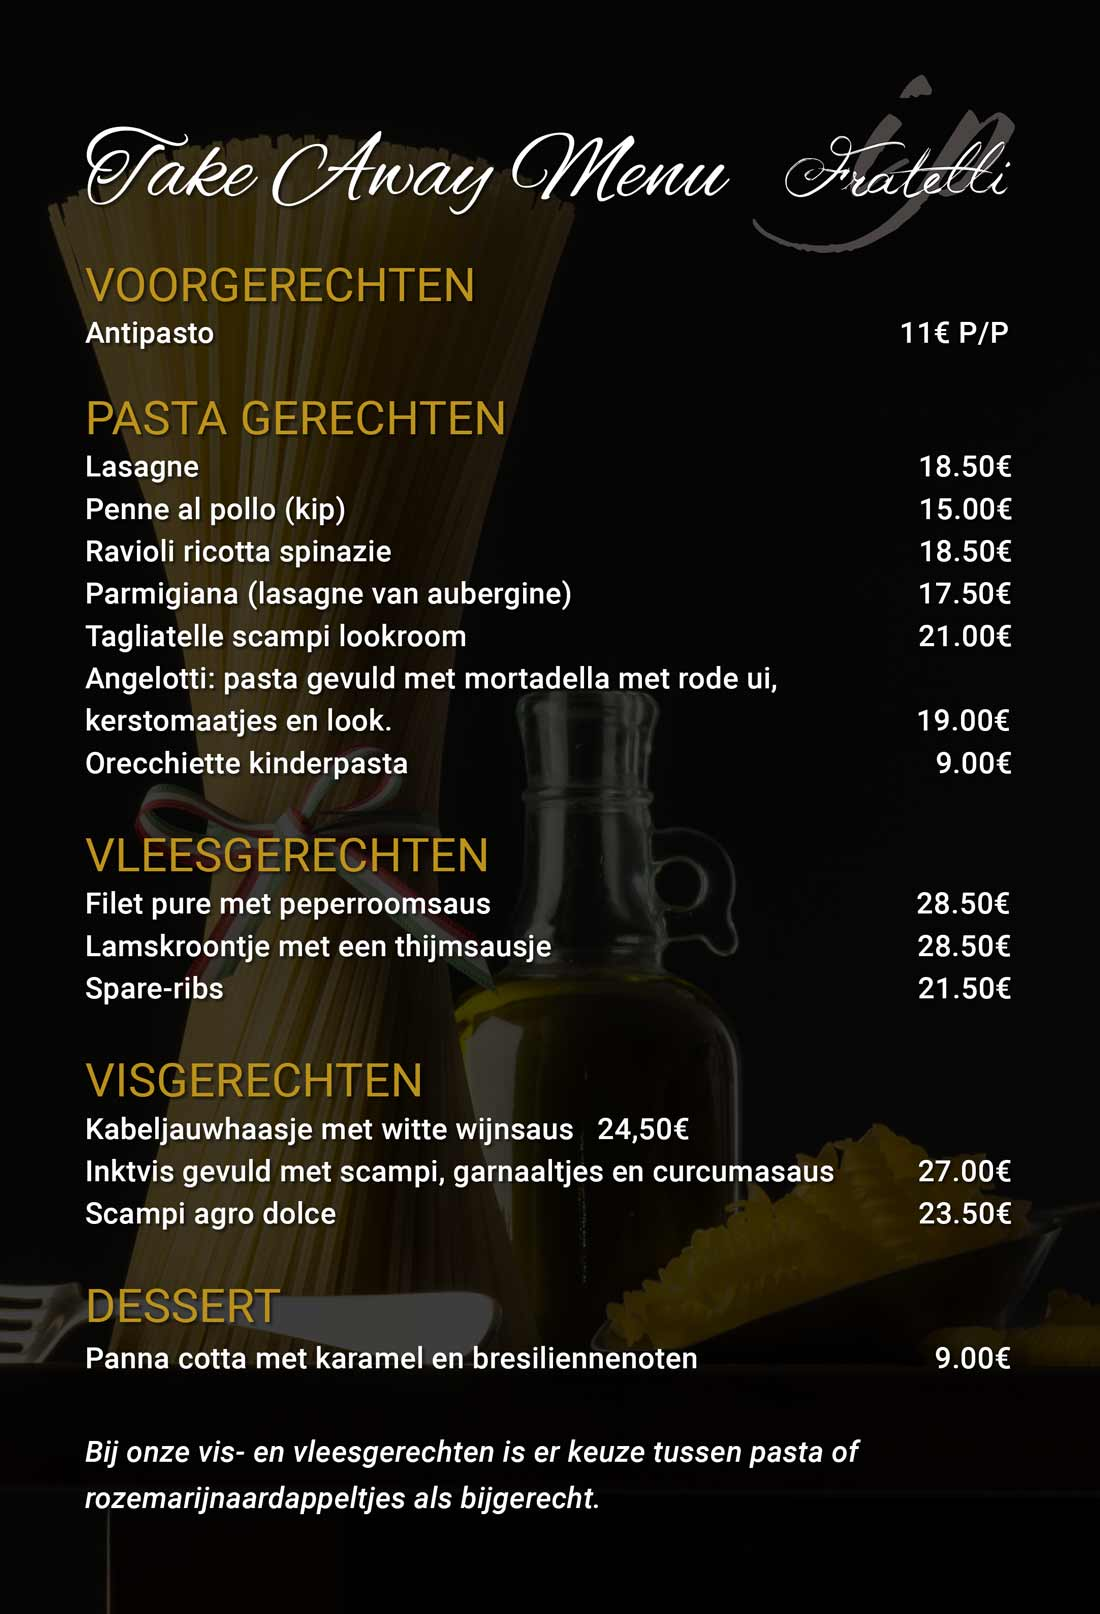 Brasserie Fratelli - Take Away Menu - Houthalen